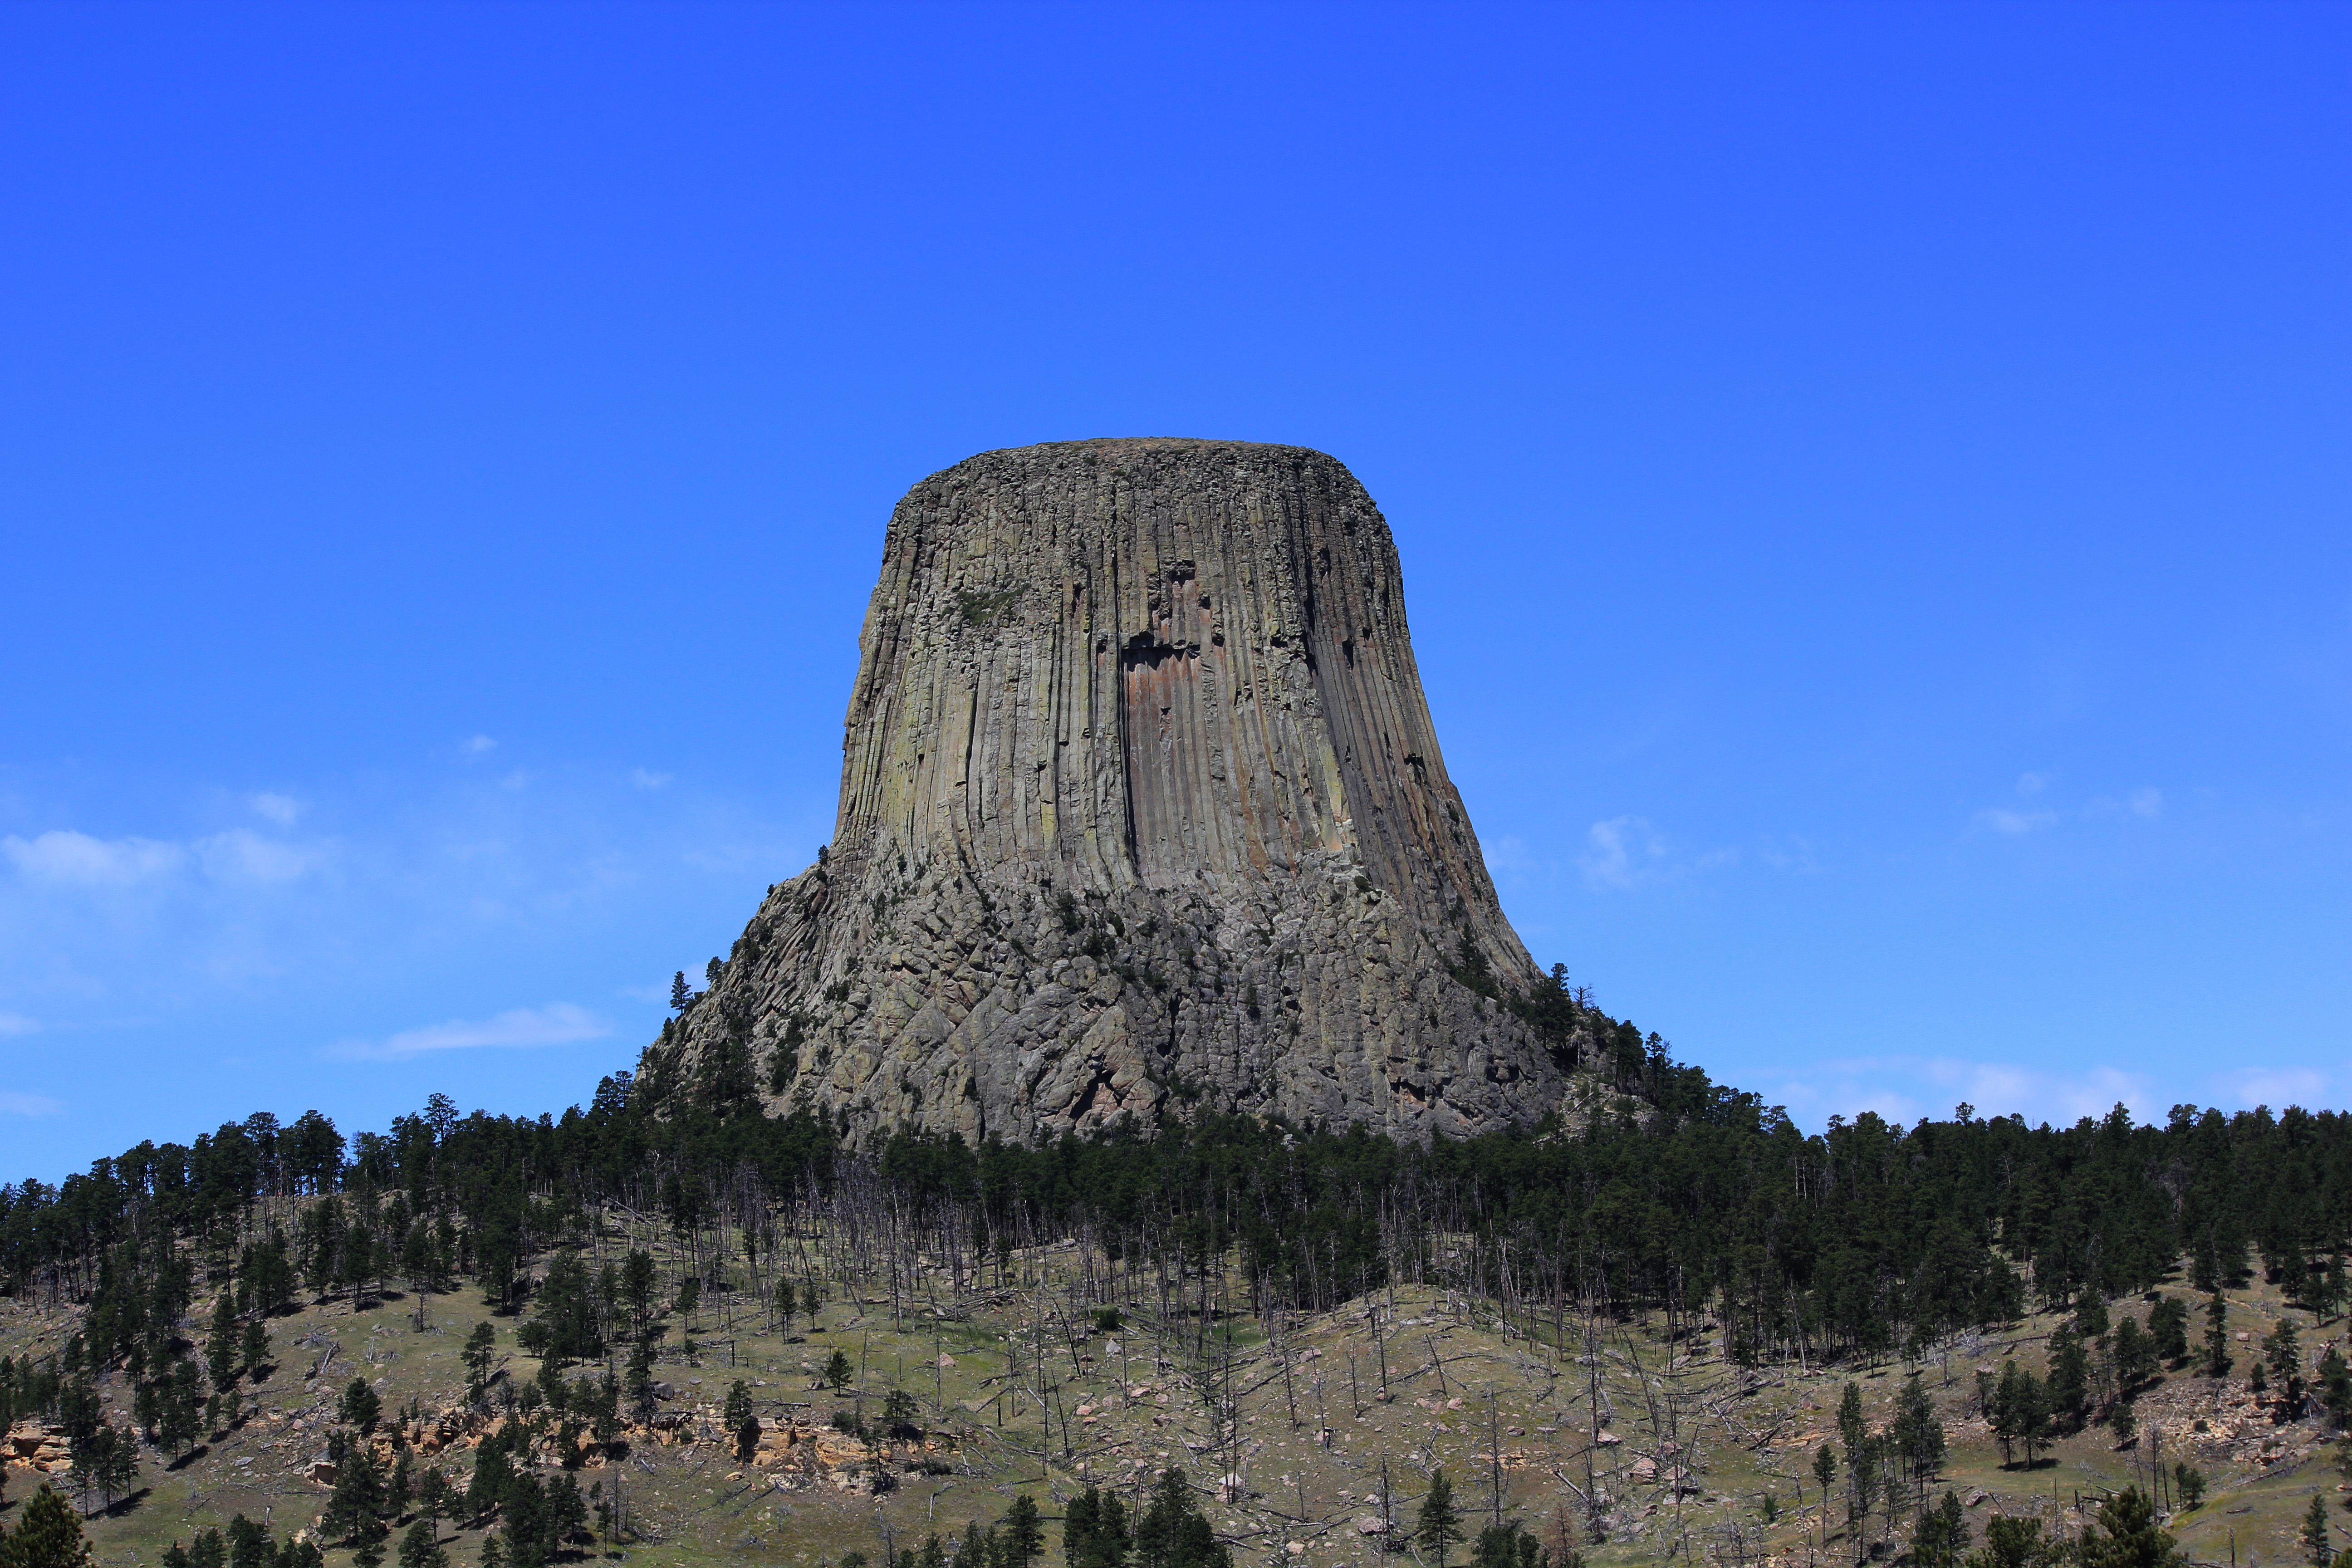 Devil's Tower National Monument, Wyoming. Photo taken on June 19, 2012.